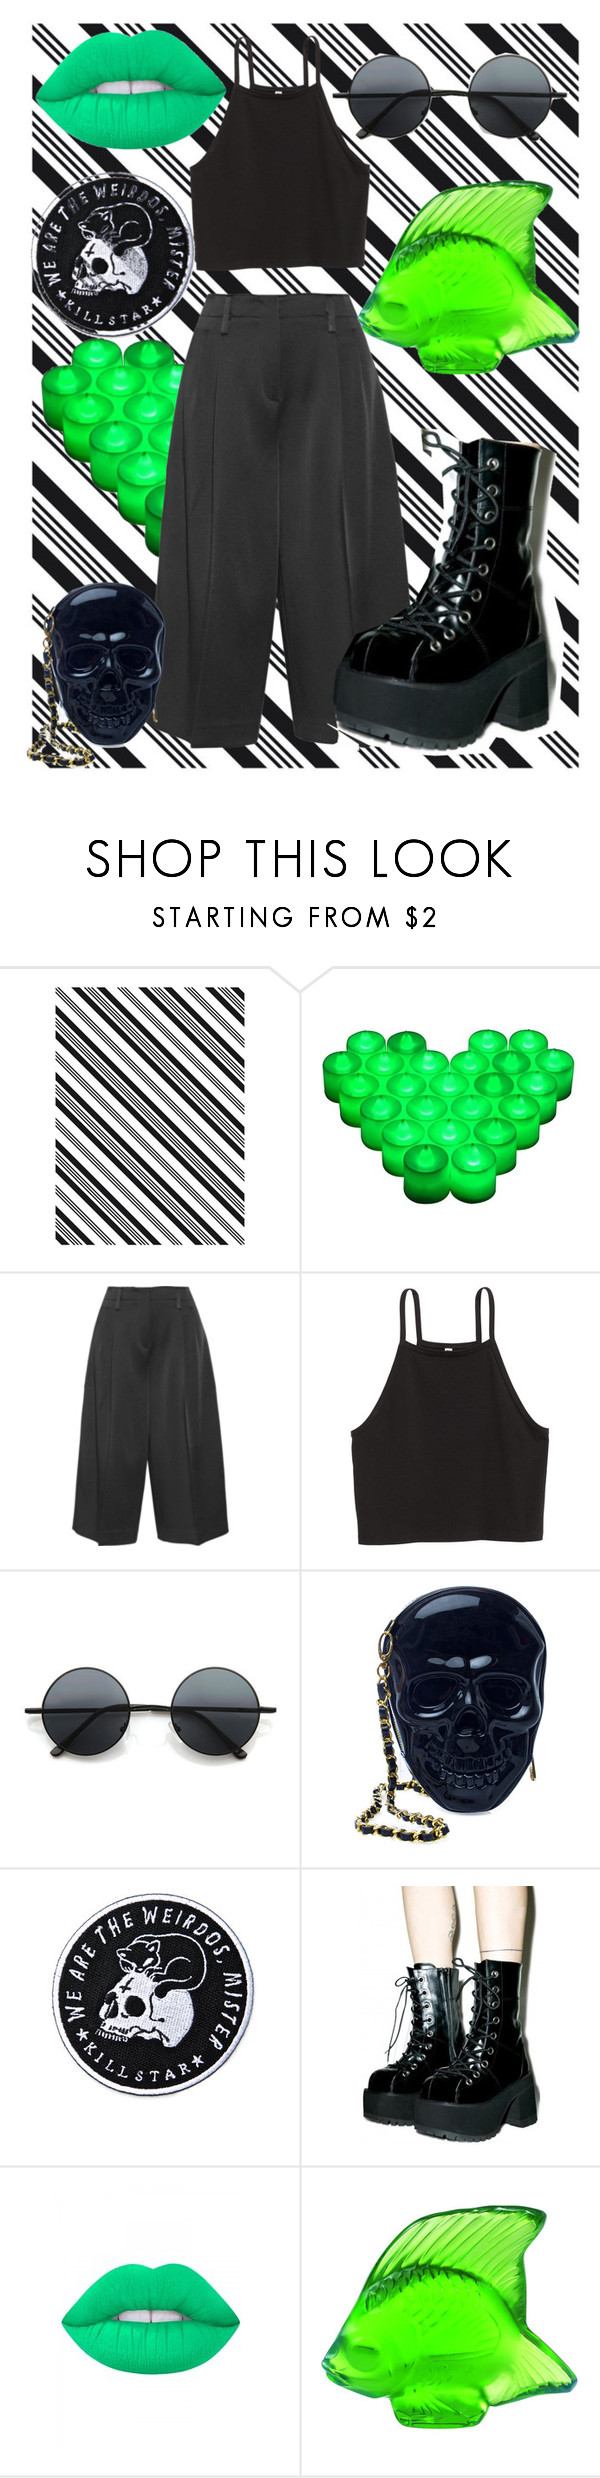 """""""Green Day"""" by xannixann ❤ liked on Polyvore featuring Darice, Joseph, Retrò, Loungefly, Killstar, Lime Crime and Lalique"""